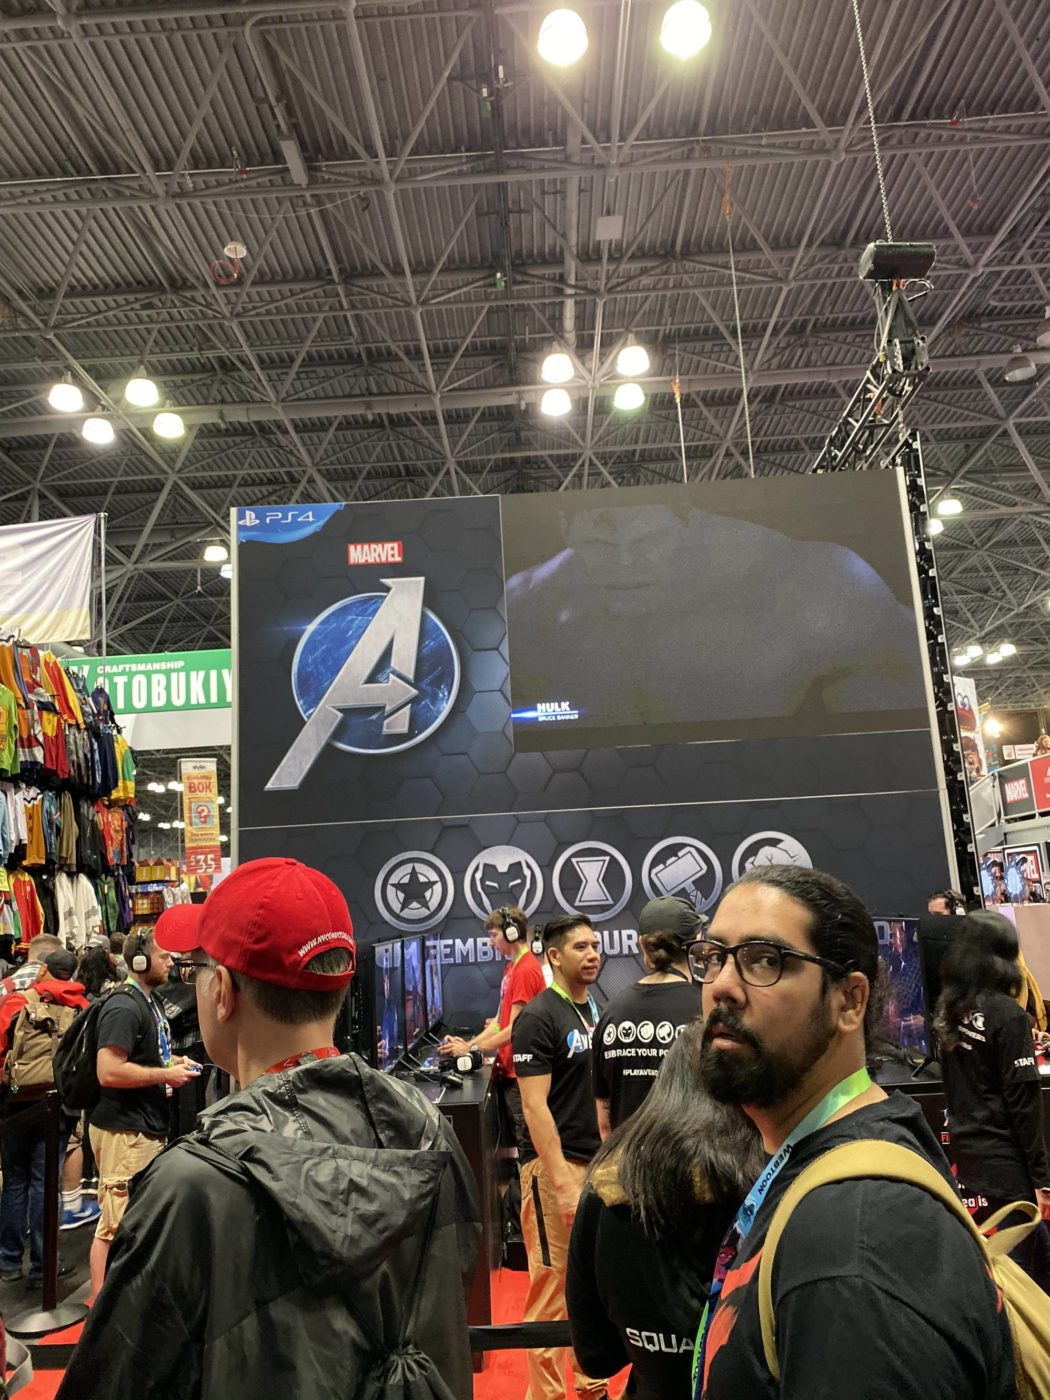 avengers game power levels, Marvel's Avengers Power Levels Will Be Based on Armor Stats Confirmed by Leaked Screenshot, New Gameplay Info Revealed From NYCC, MP1st, MP1st